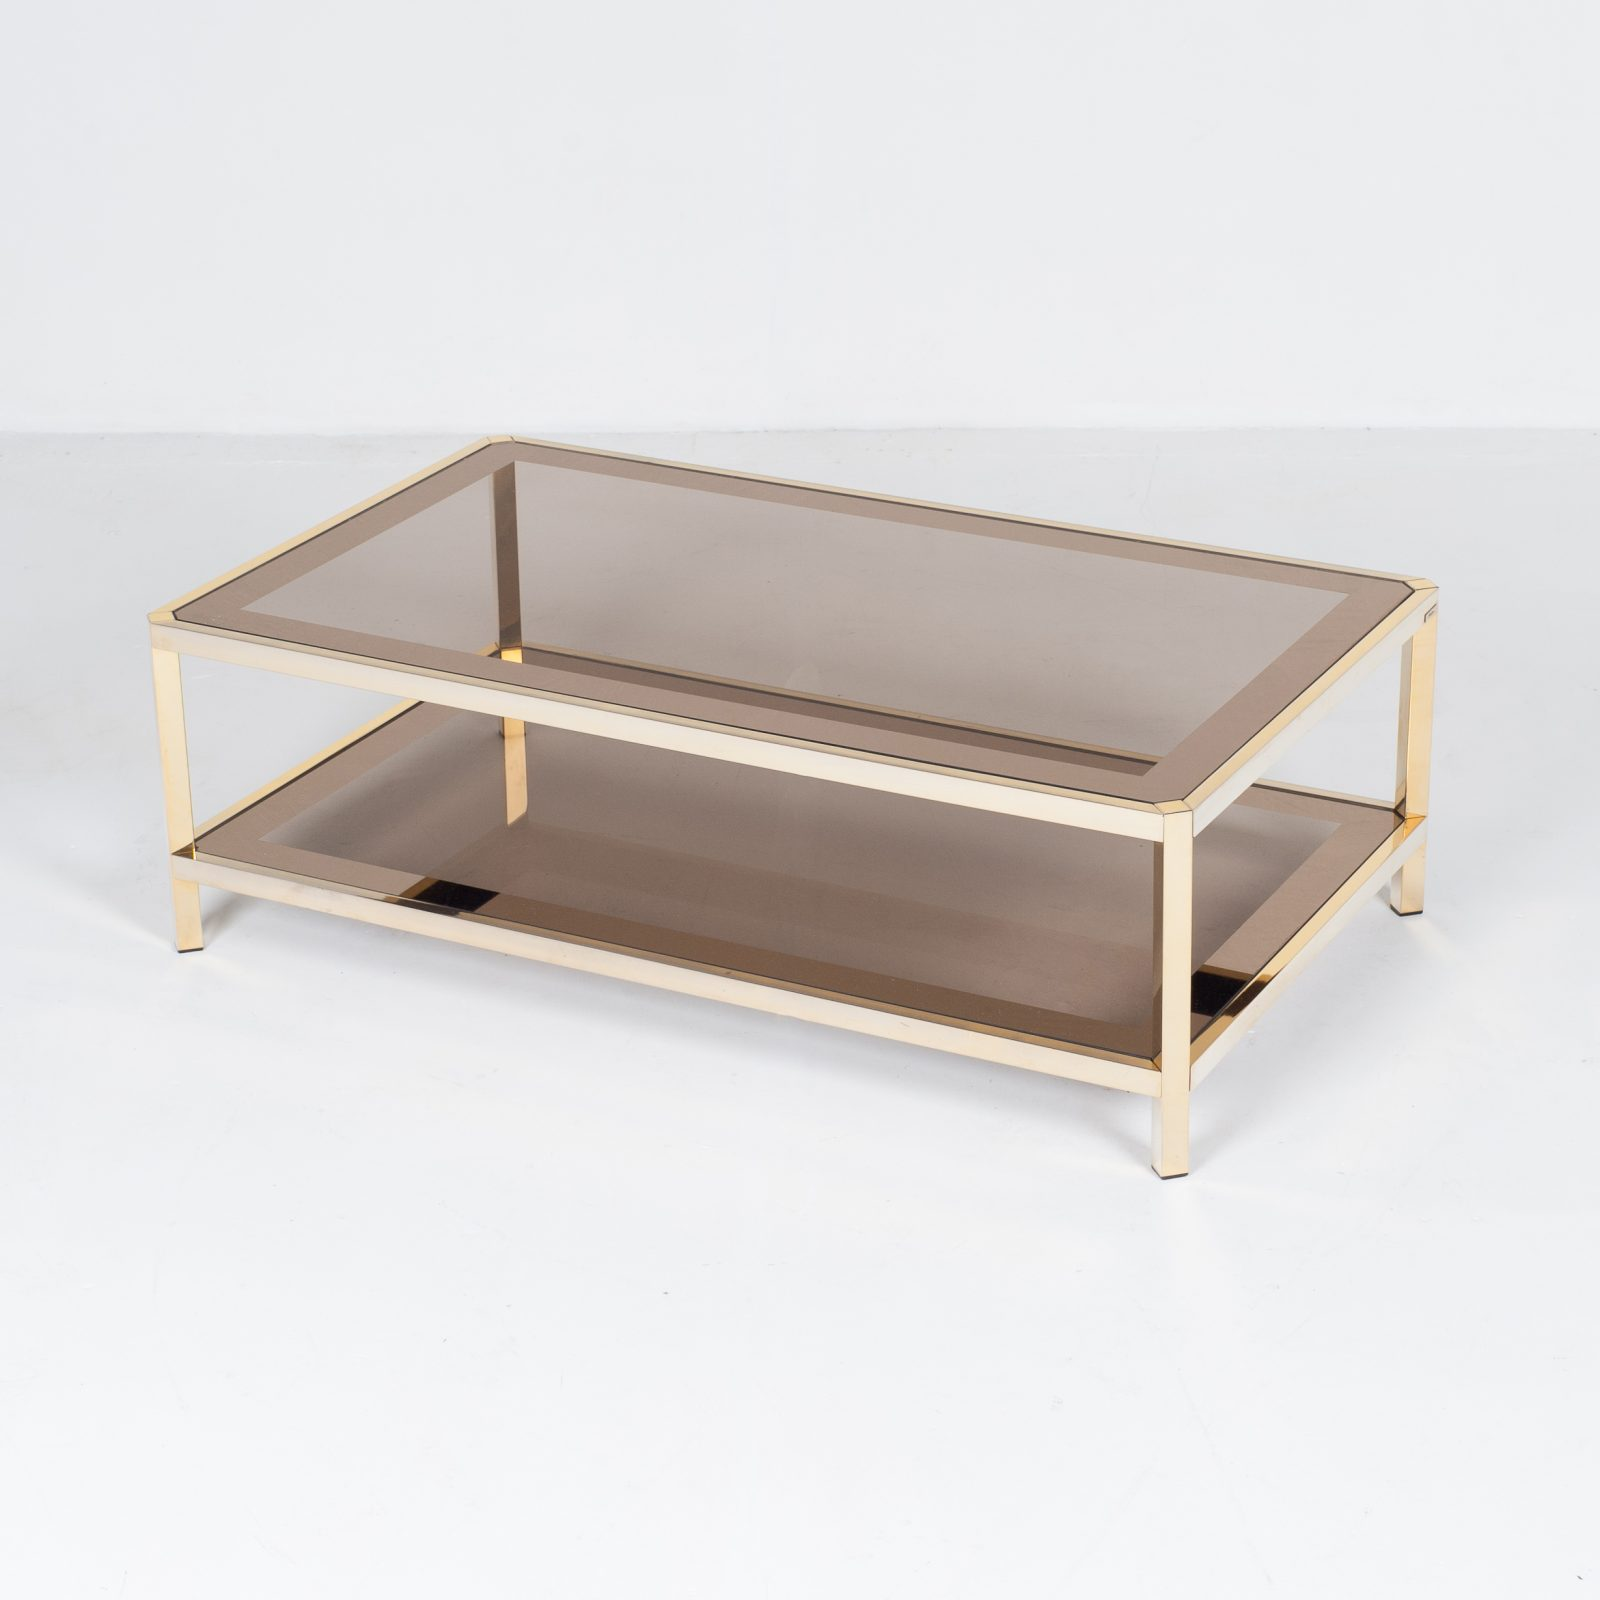 Rectangular Coffee Table By Pierre Cardin In Smoked Glass And Brass, 1960s, France22